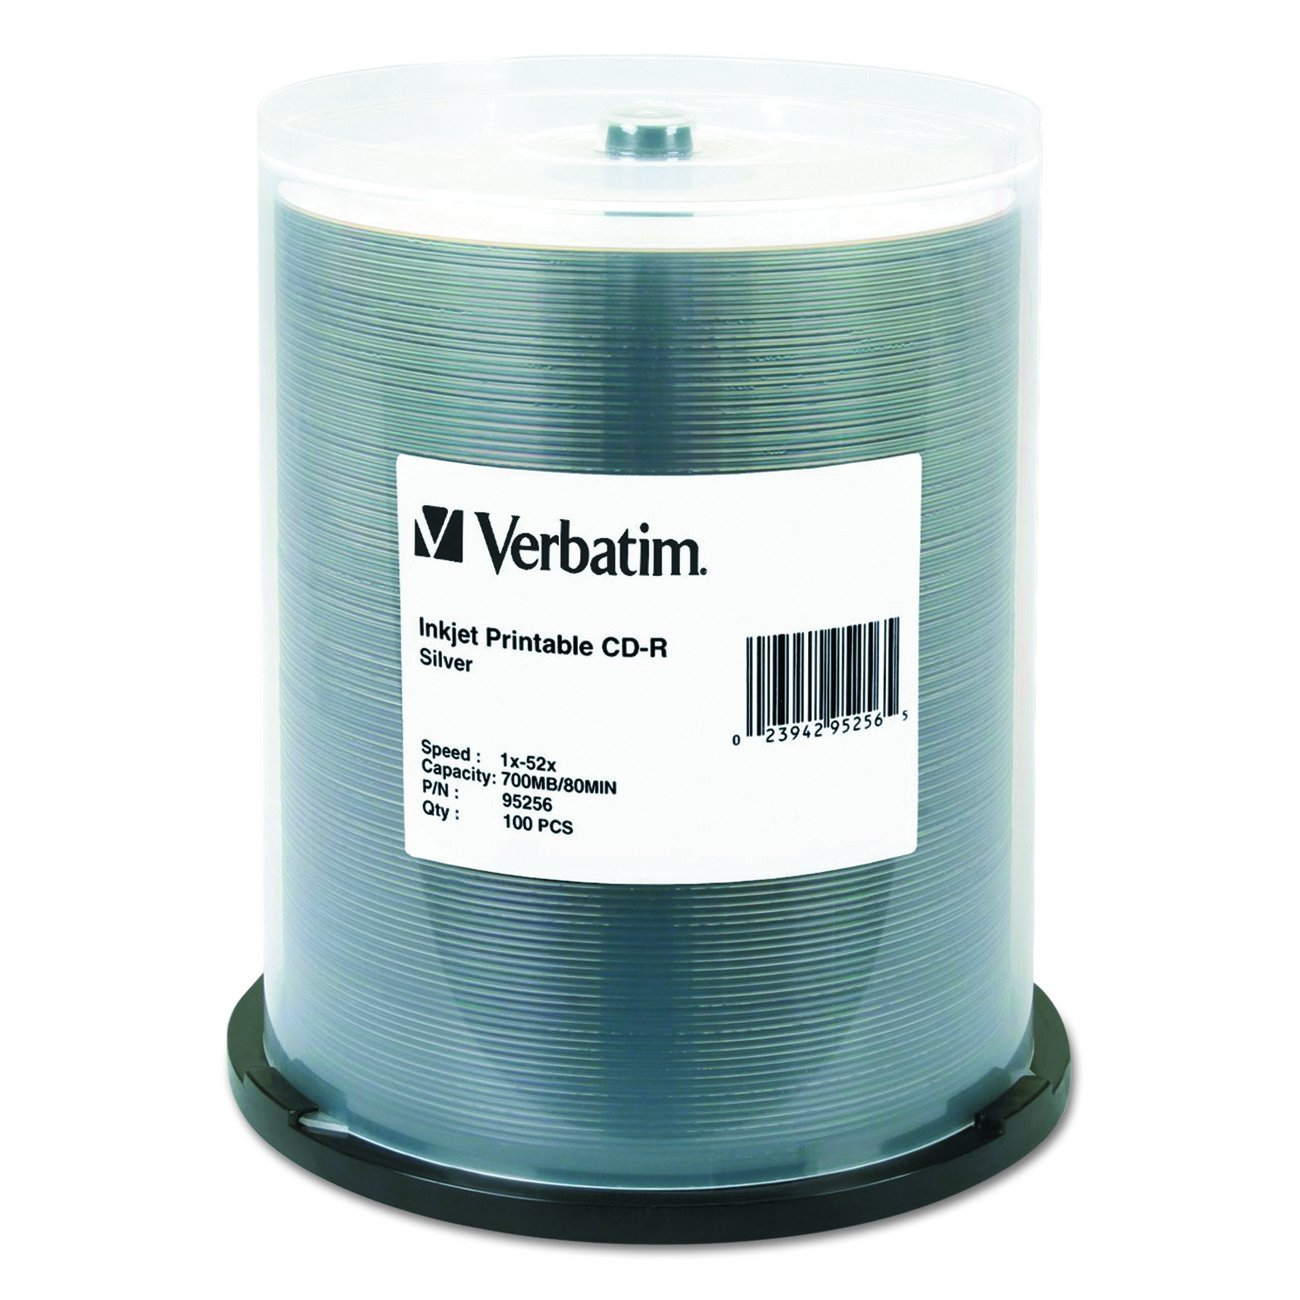 Verbatim CD-R 700MB 52X White Inkjet Printable Recordable Media Disc - 100pk Spindle VERBATIM CORPORATION 95251 Blank Media & Cleaning Cartridges